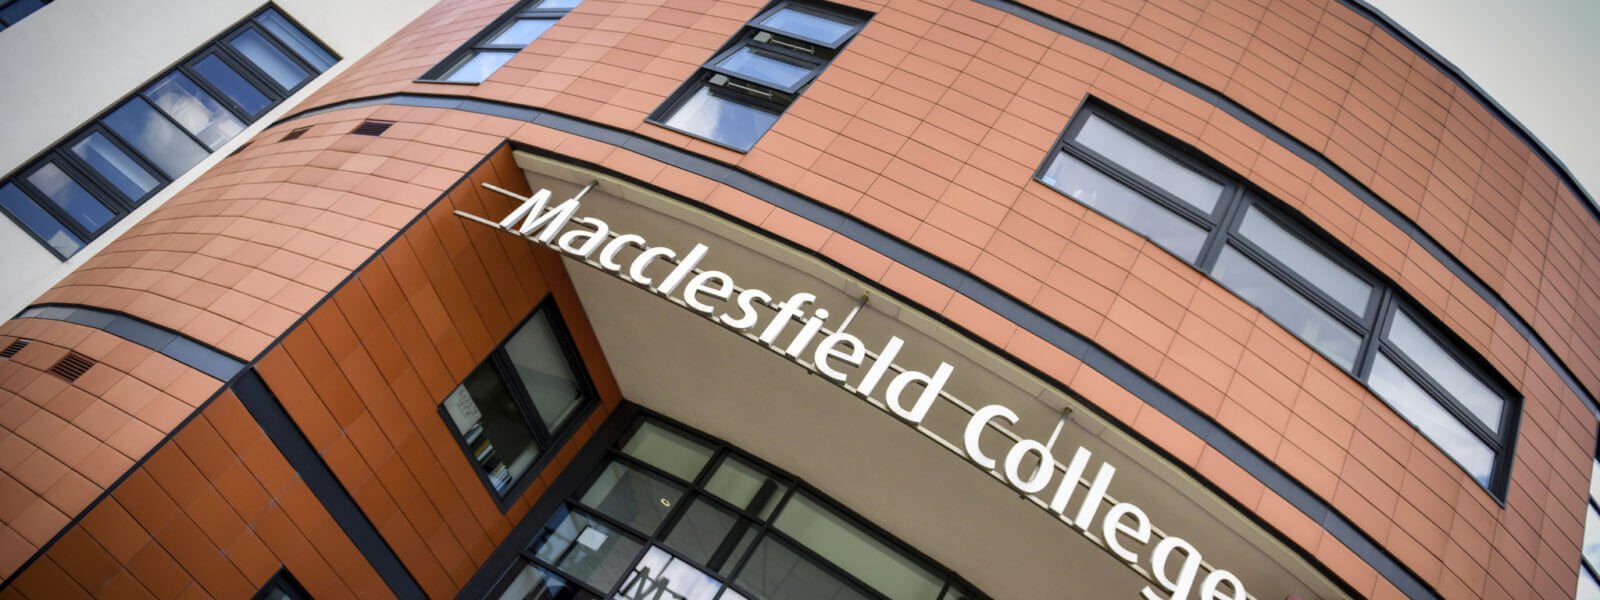 Macclesfield College forms partnership with University of Derby - marketingwam.co.uk